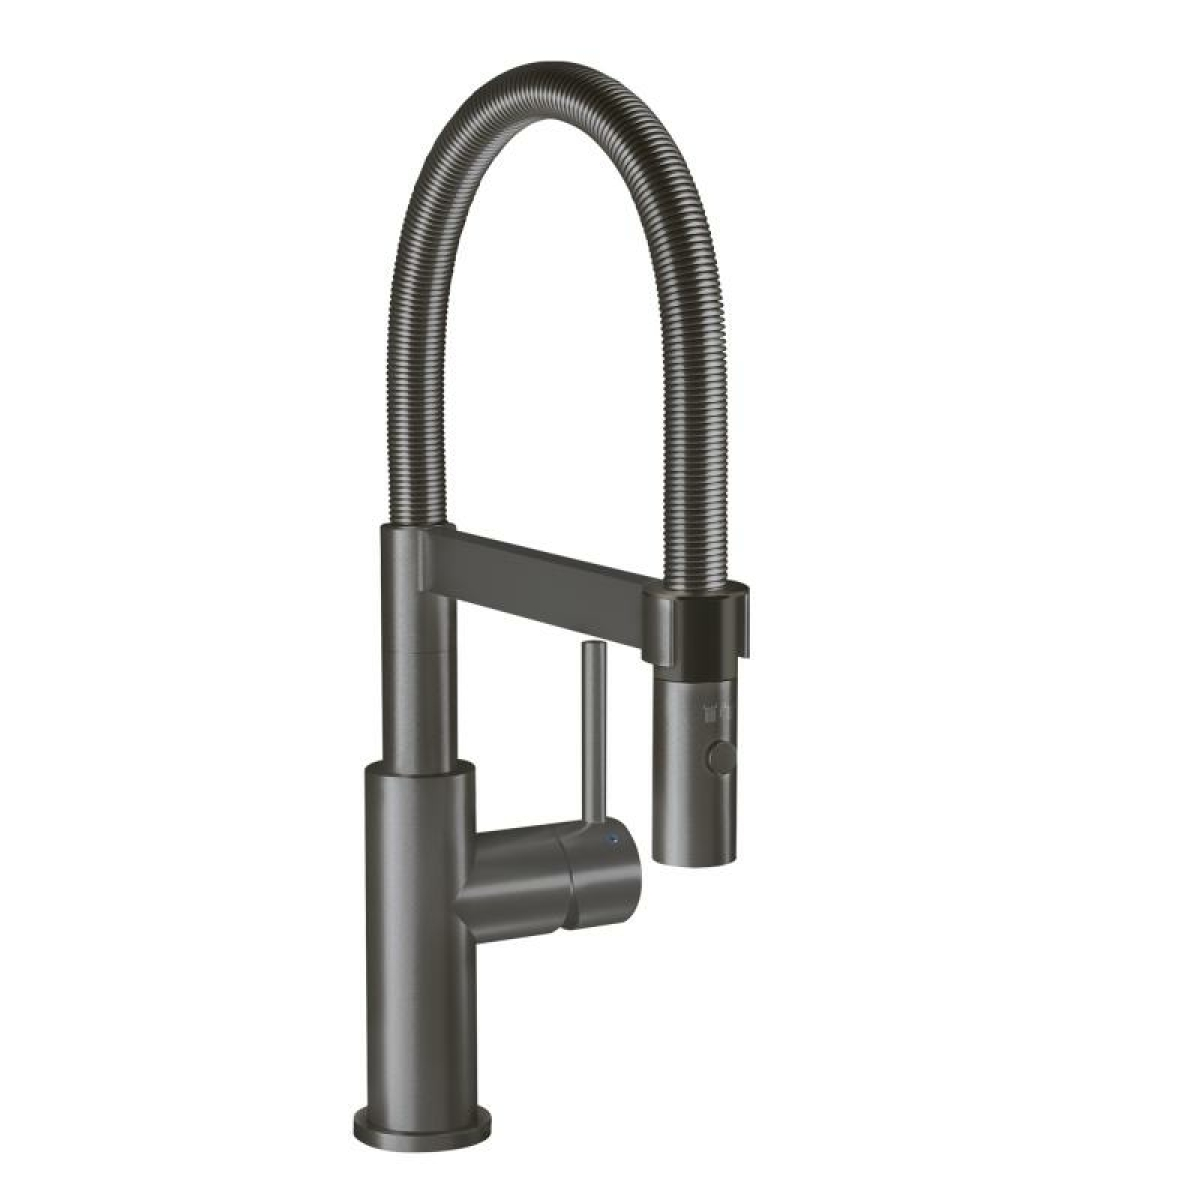 Villeroy & Boch 92730005 Steel Expert Compact Anthracite